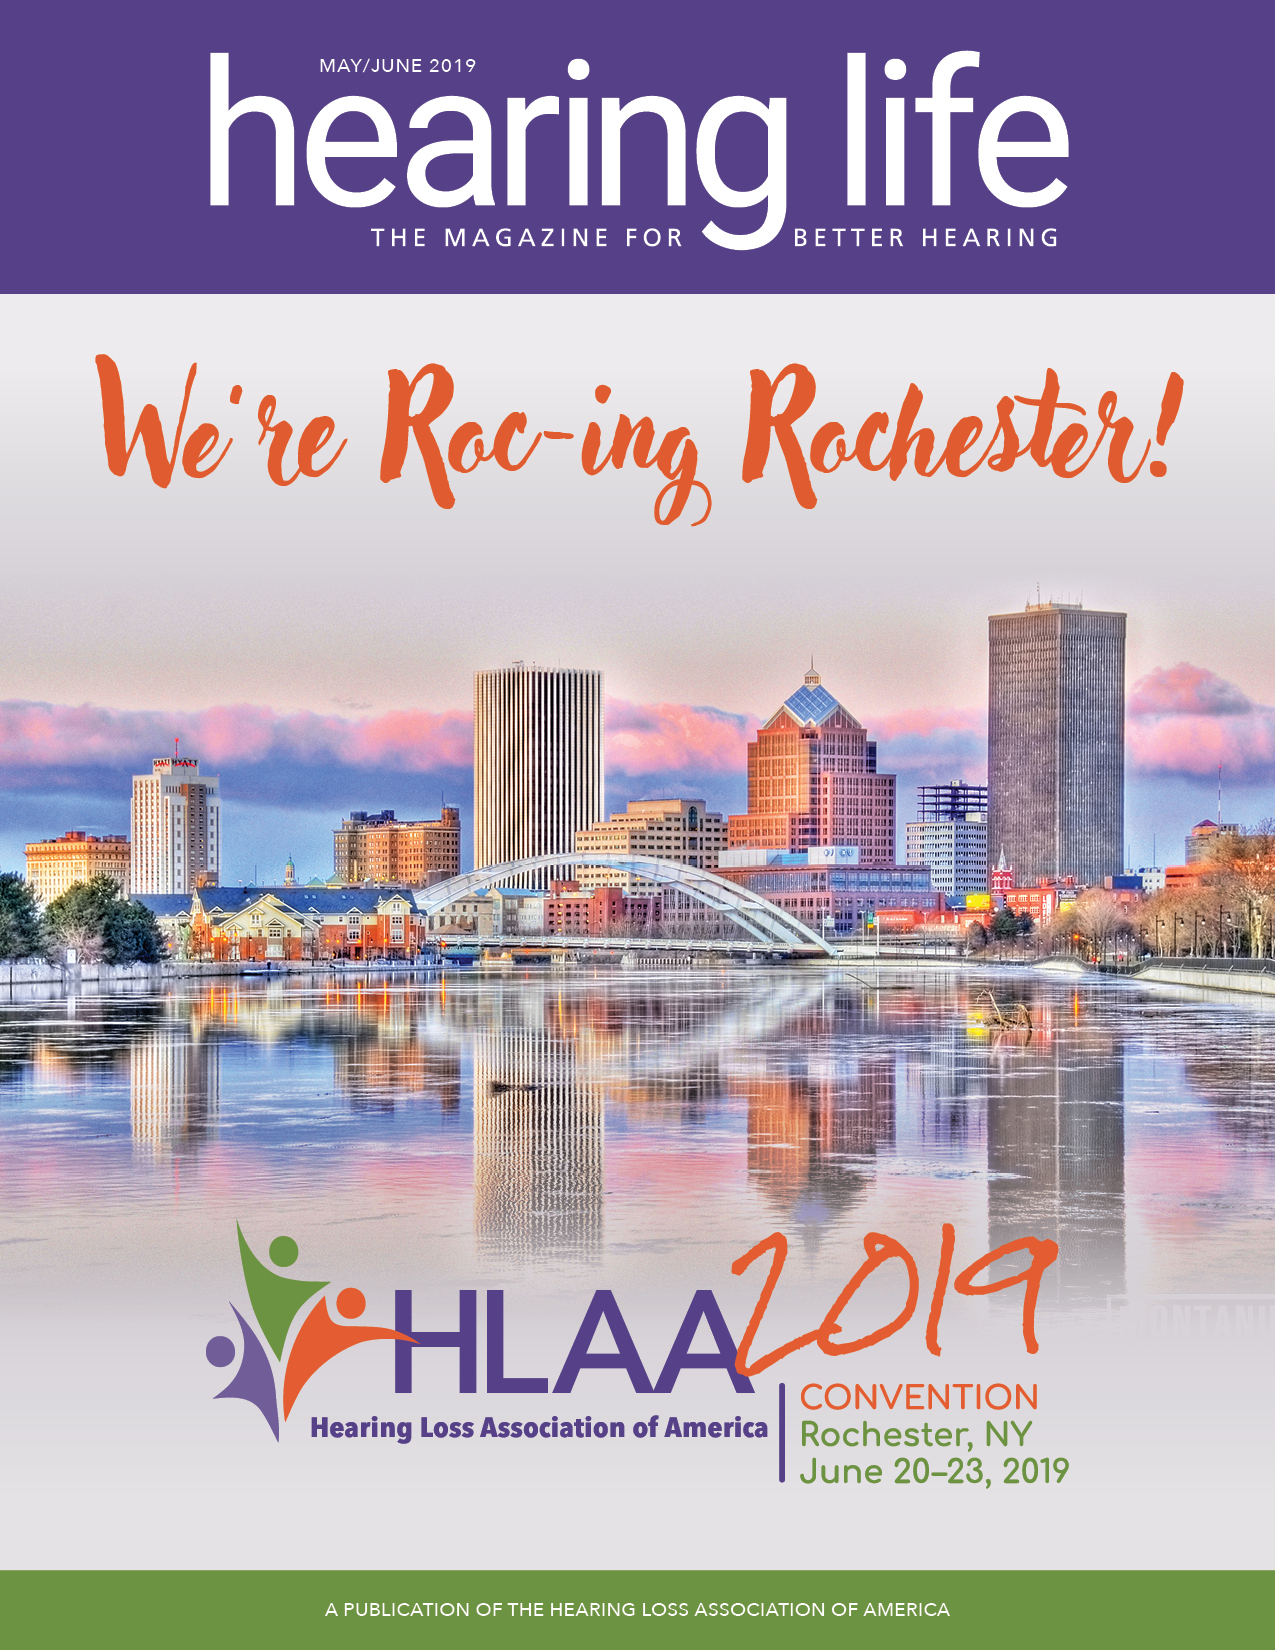 HLAA HearingLife 2019 May/June Cover